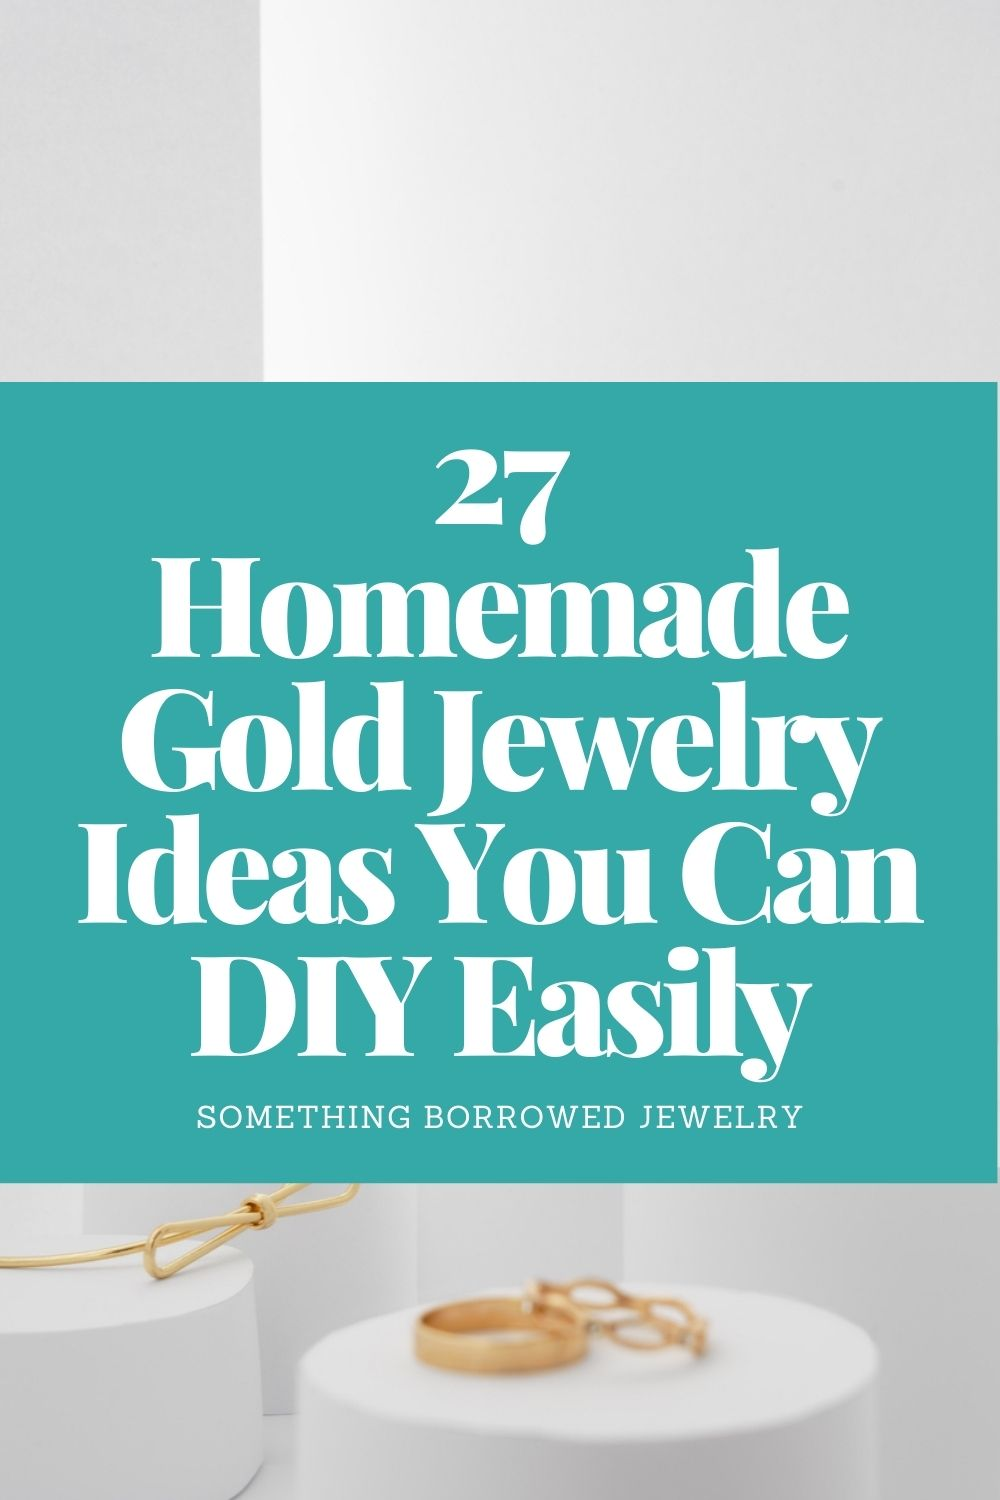 27 Homemade Gold Jewelry Ideas You Can DIY Easily pin 2